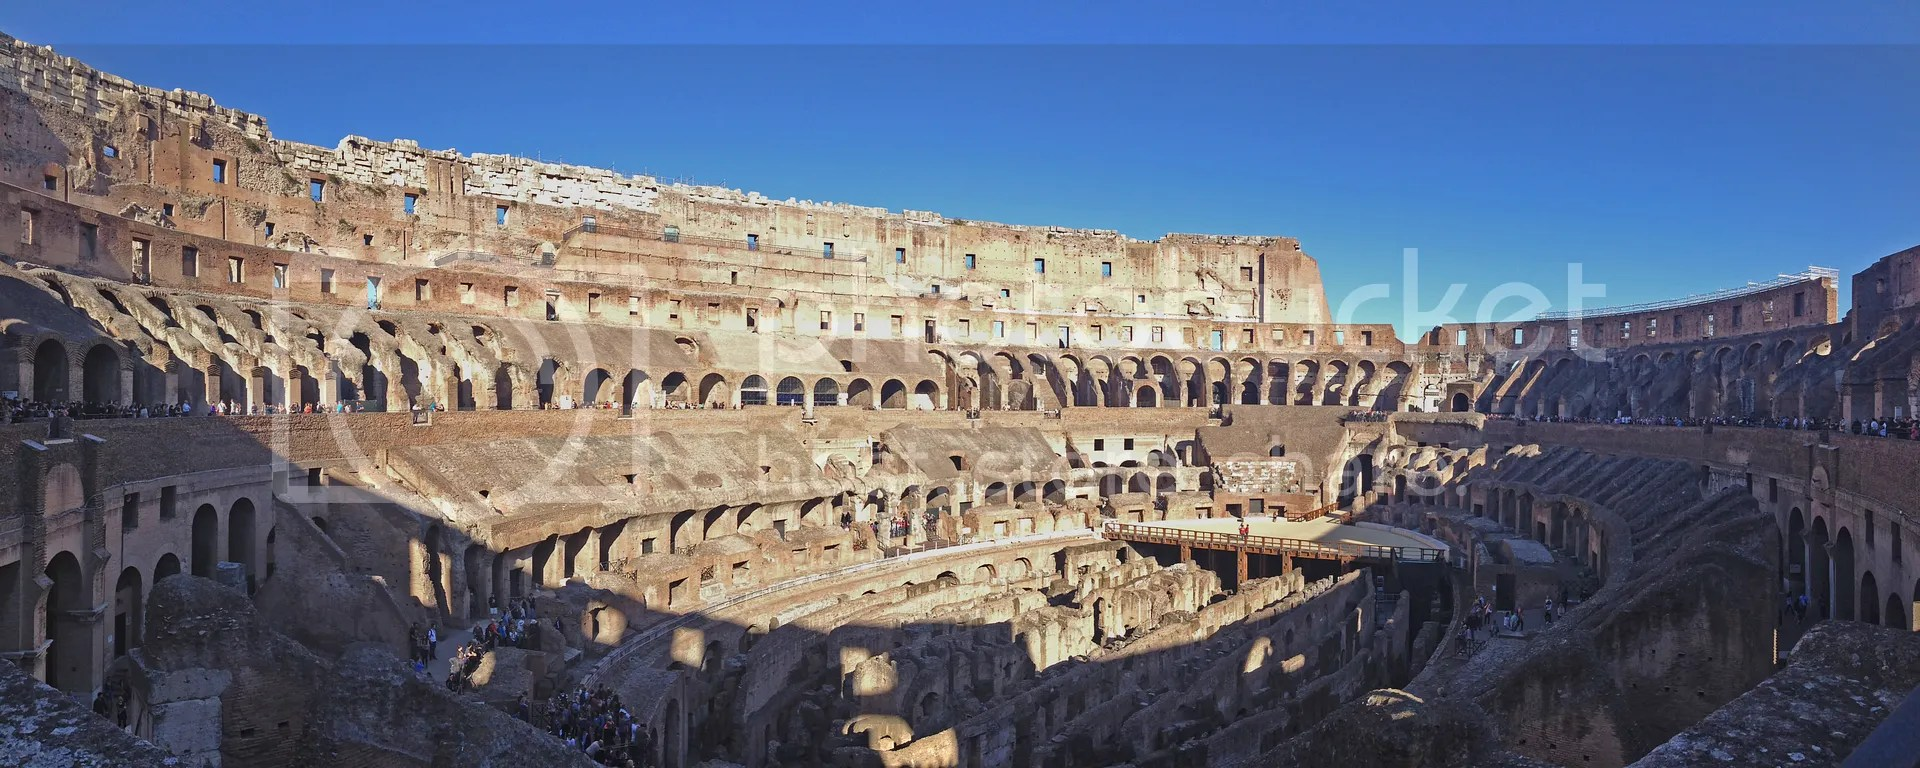 photo Rome-Colosseum_zpstyagejwq.jpg